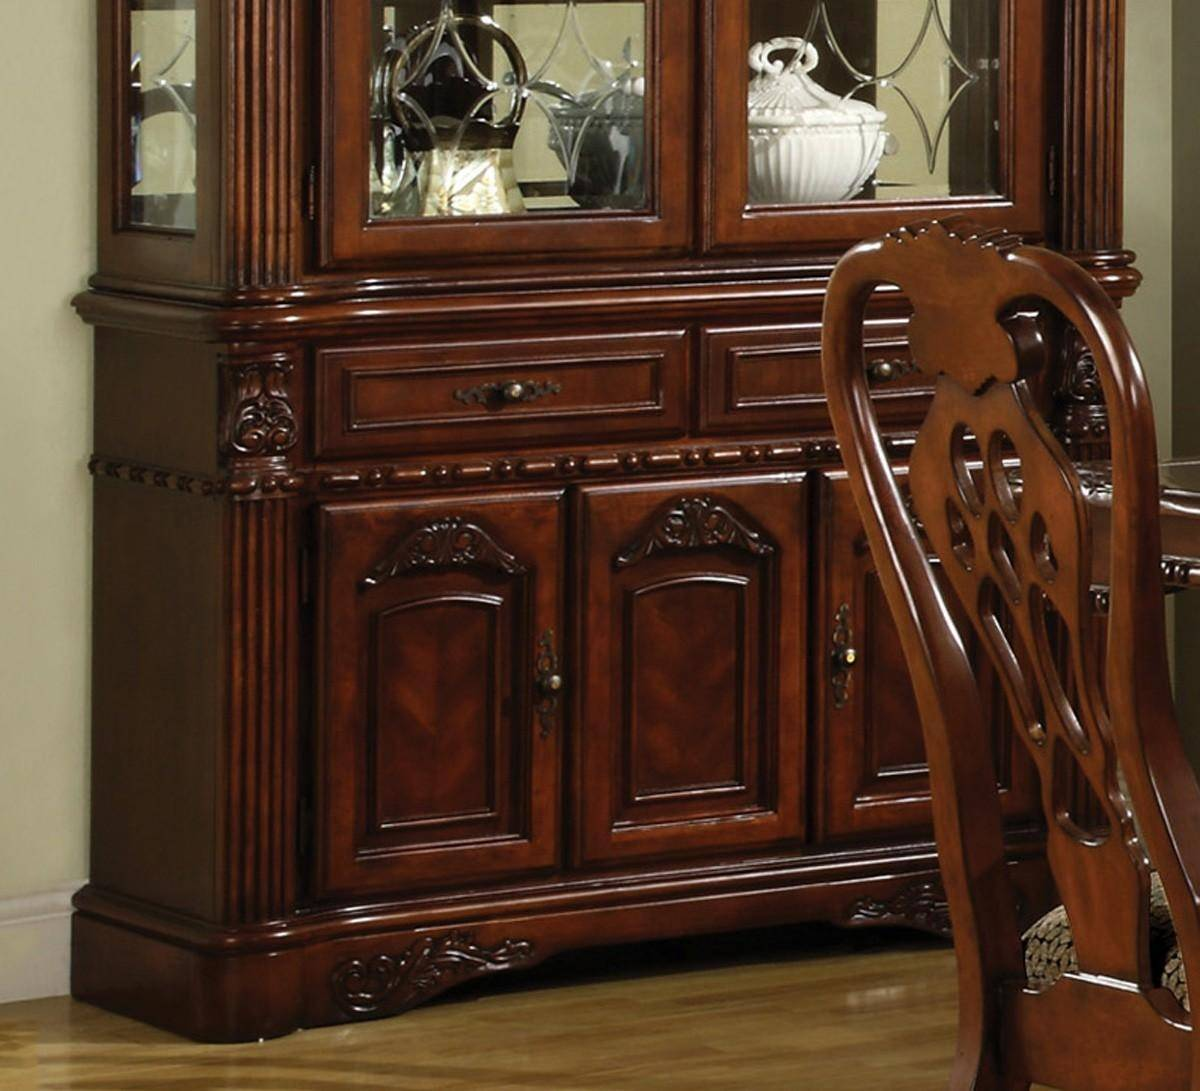 buy dining room set clarity photographs | Crown Mark 2470-2471 Brussels Traditional Rich Brown ...